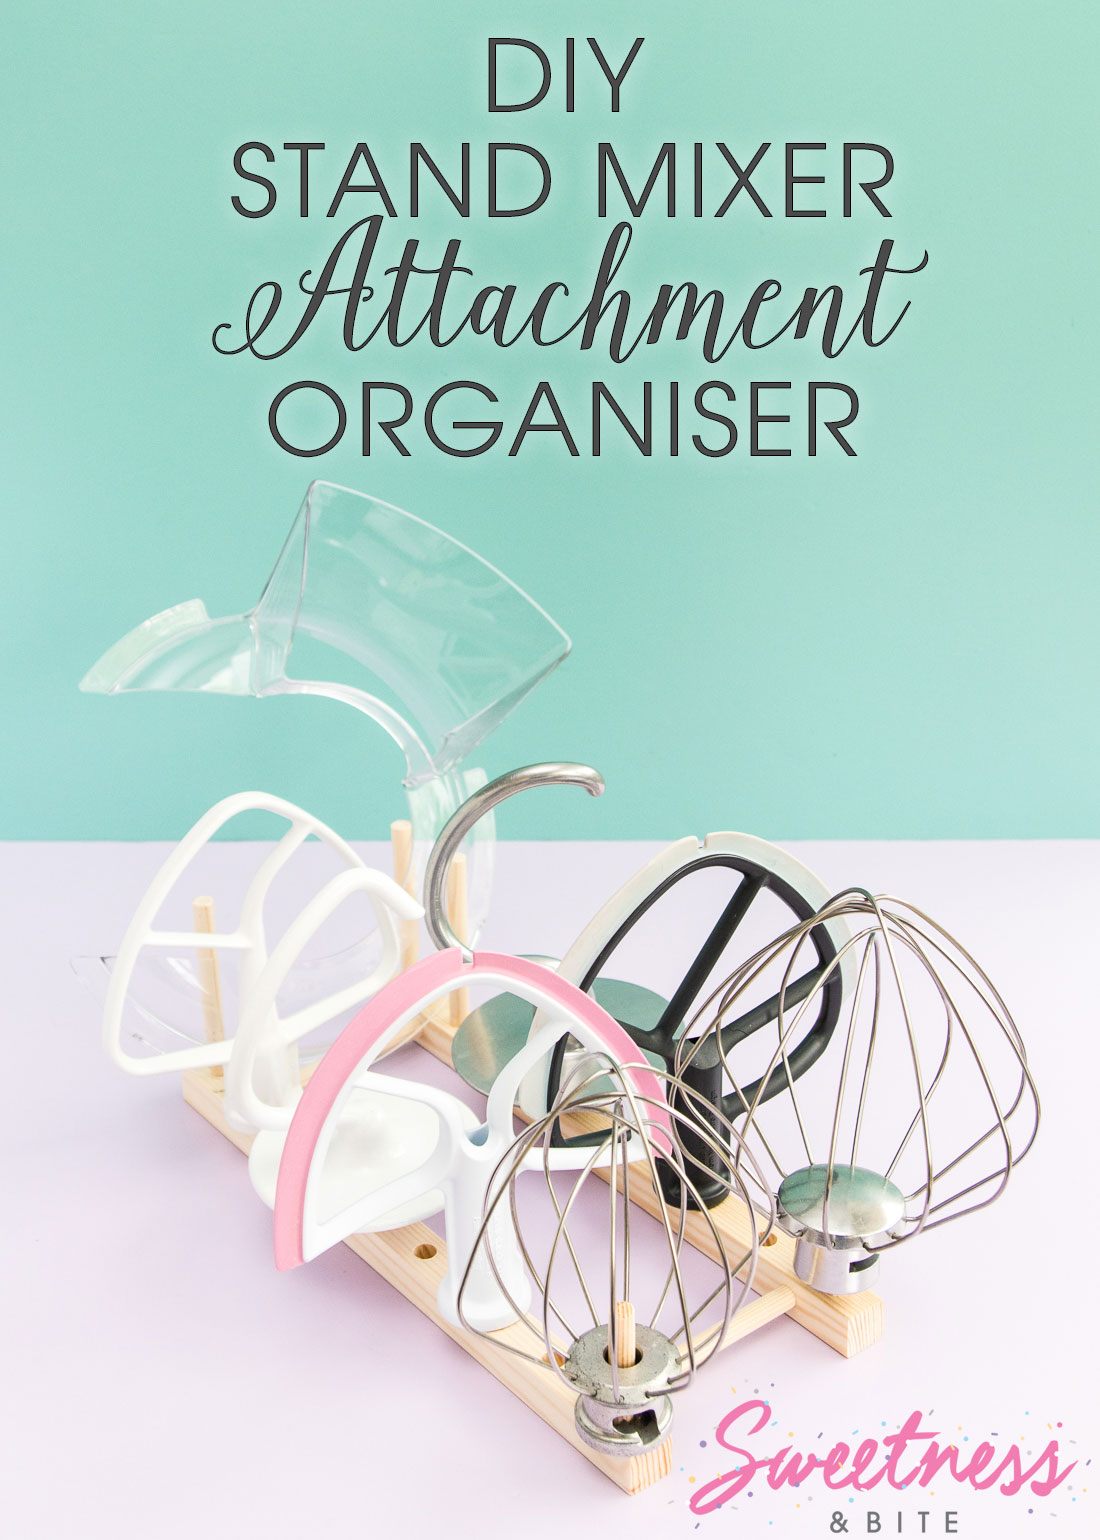 DIY Stand Mixer Attachment Organiser - Make your own handy organiser for your mixer attachments using a wooden plate rack.